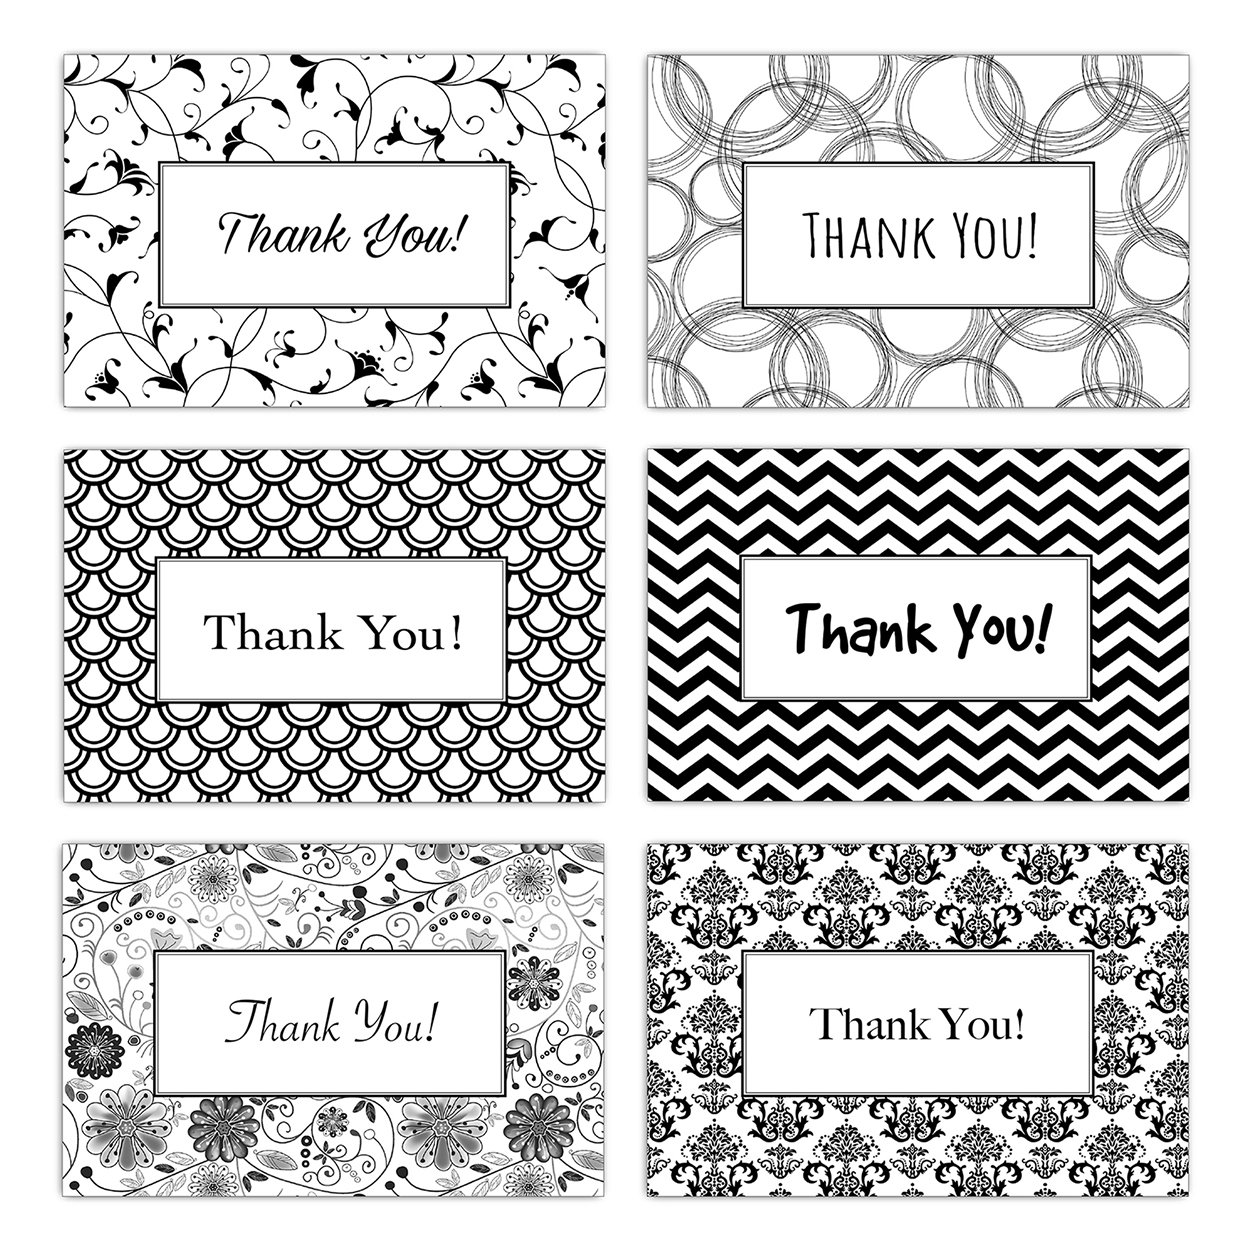 60 Postcards - Thank You Note Cards with Black and White Patterns (6 Designs) - 4x6 Double Sided Greetings